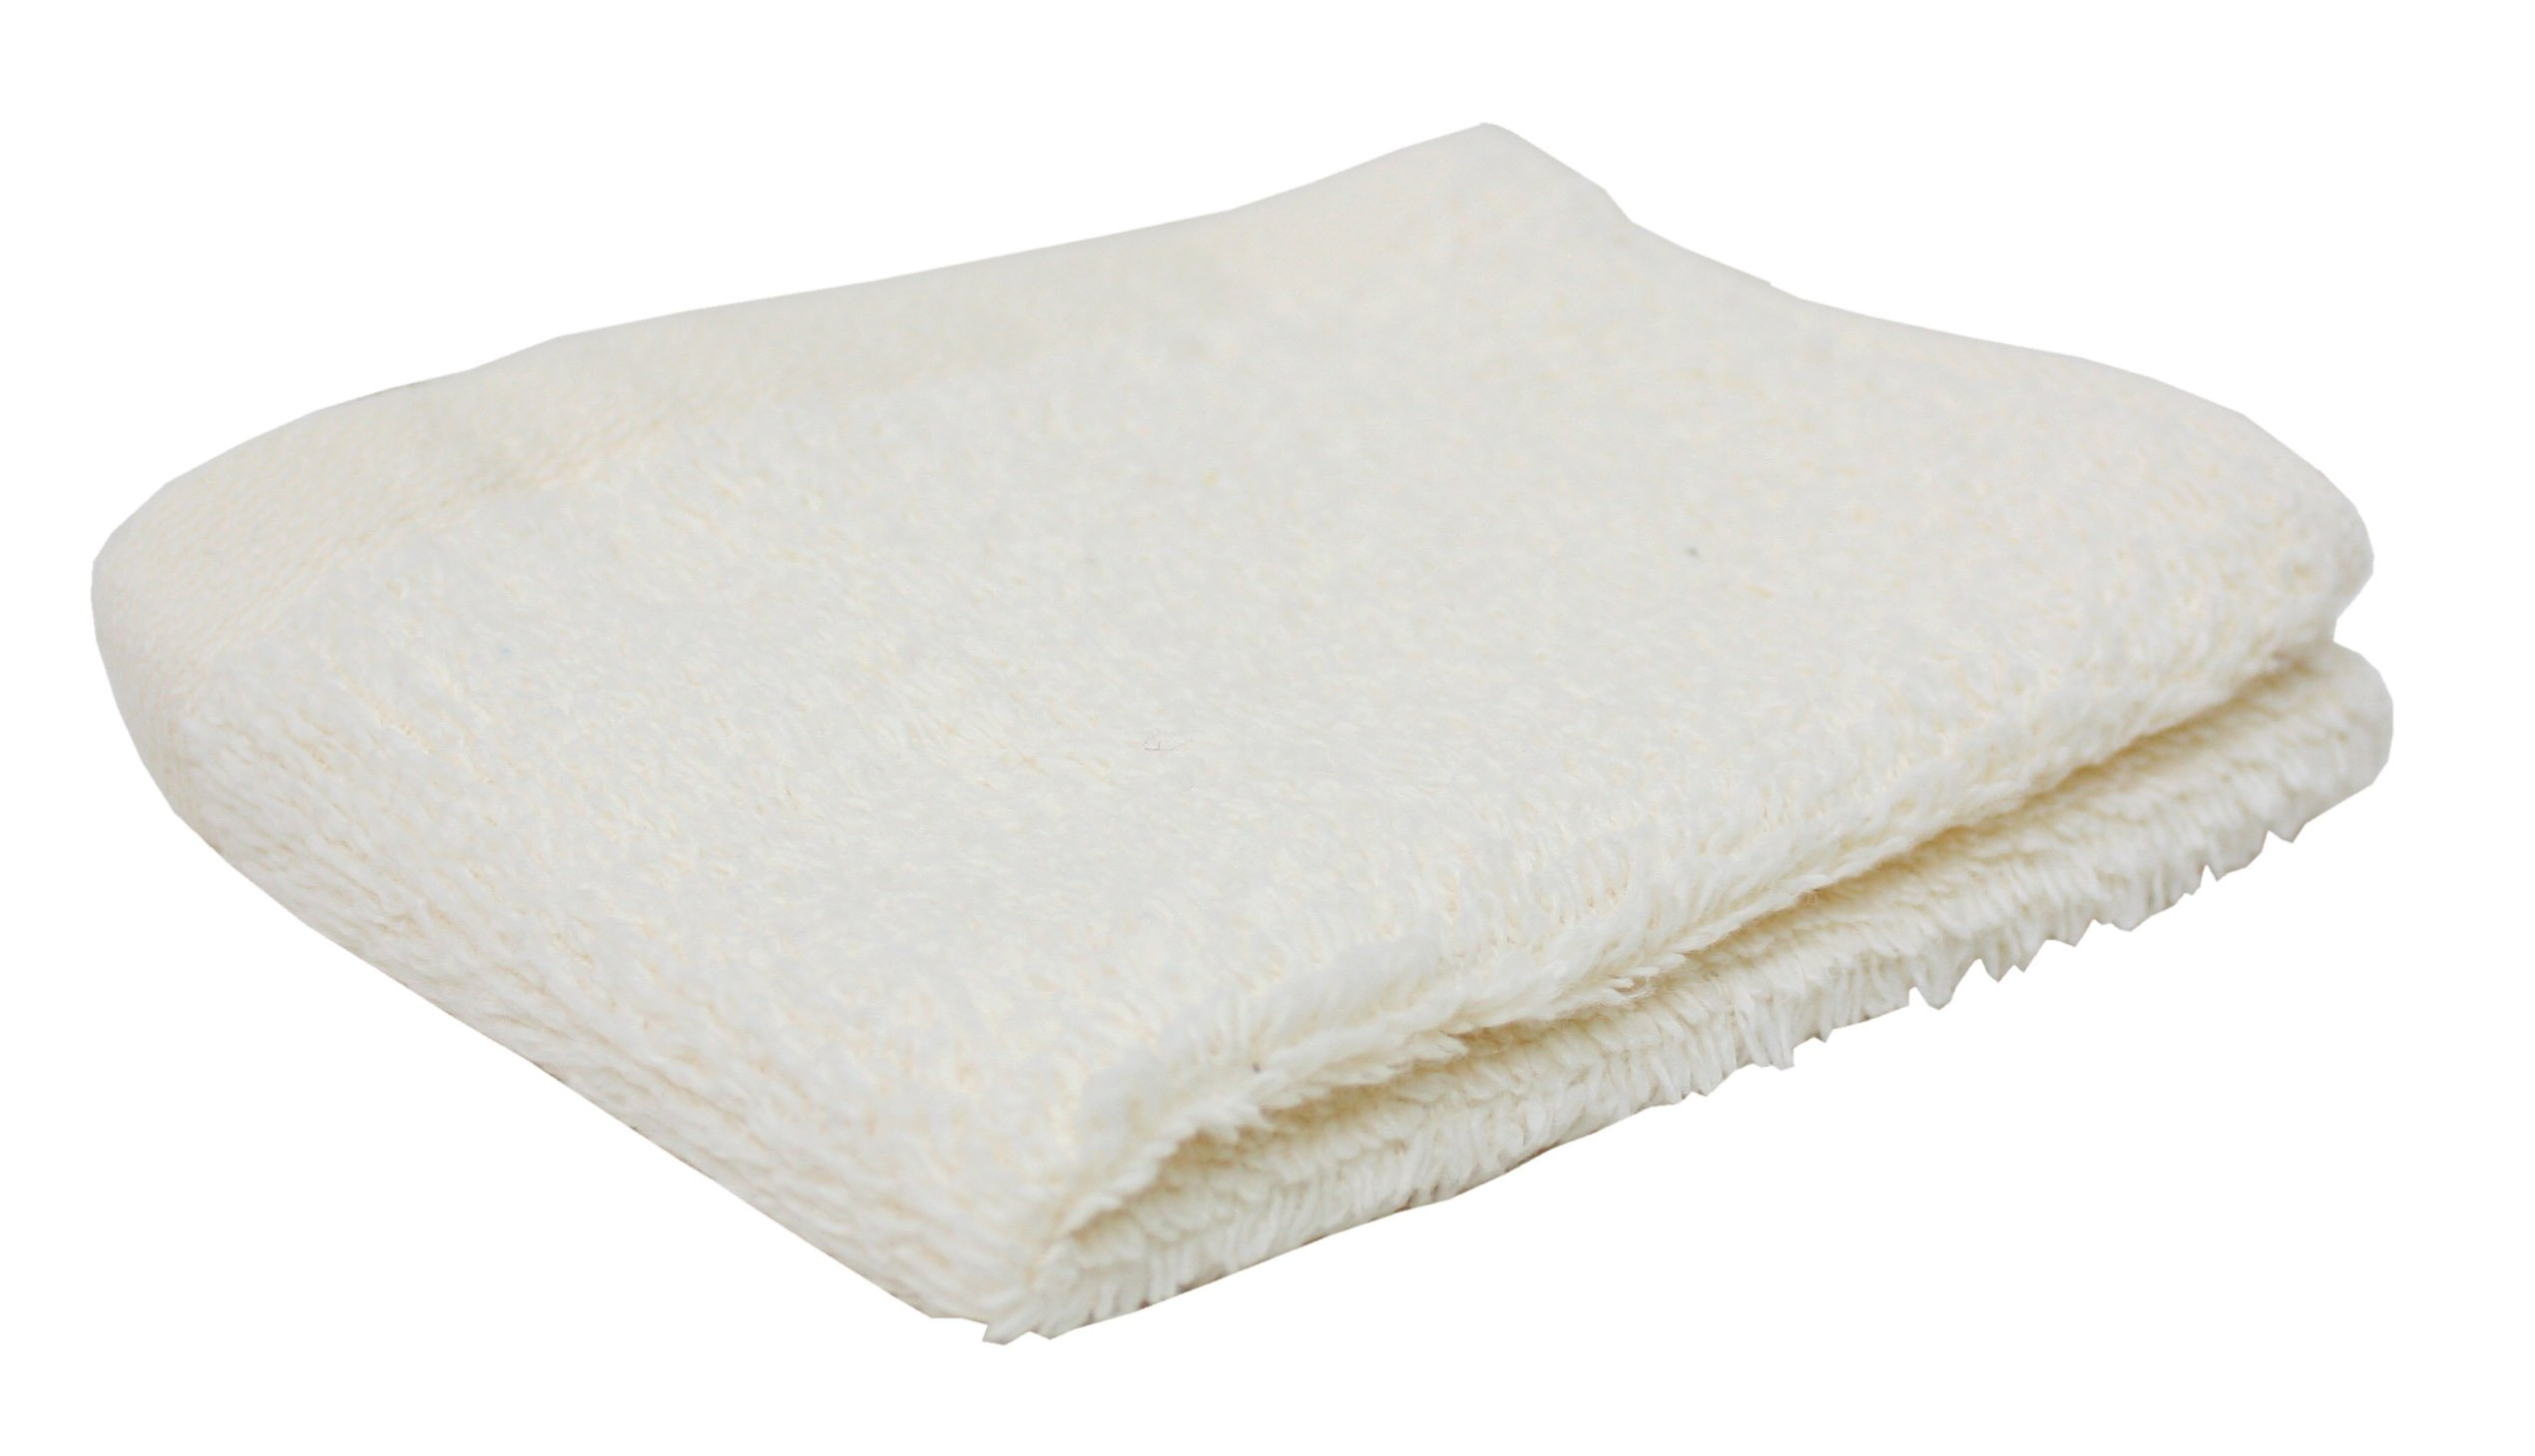 Premium 144-Piece Bulk Pack Cotton Washcloth Set, 12x12'',  Hotel & Spa Quality, Super Soft and Ultra Absorbent for Commercial Business-Off White